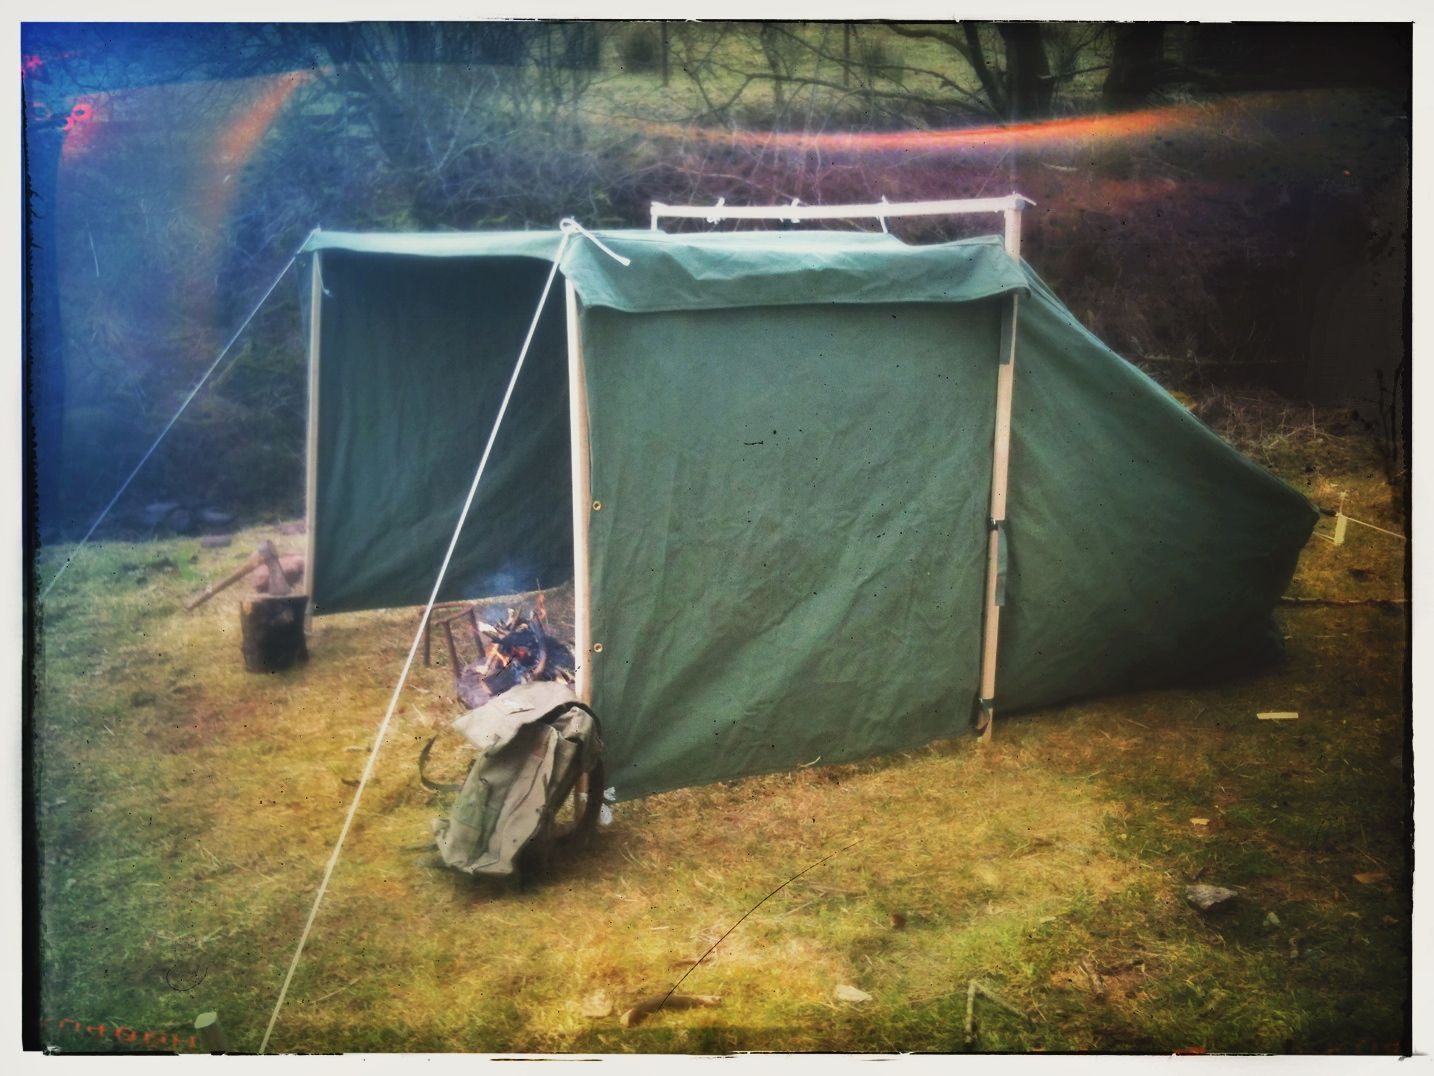 Canvas Baker Tent - traditional  C&fire tent  style - with both side wings out & Canvas Baker Tent - traditional